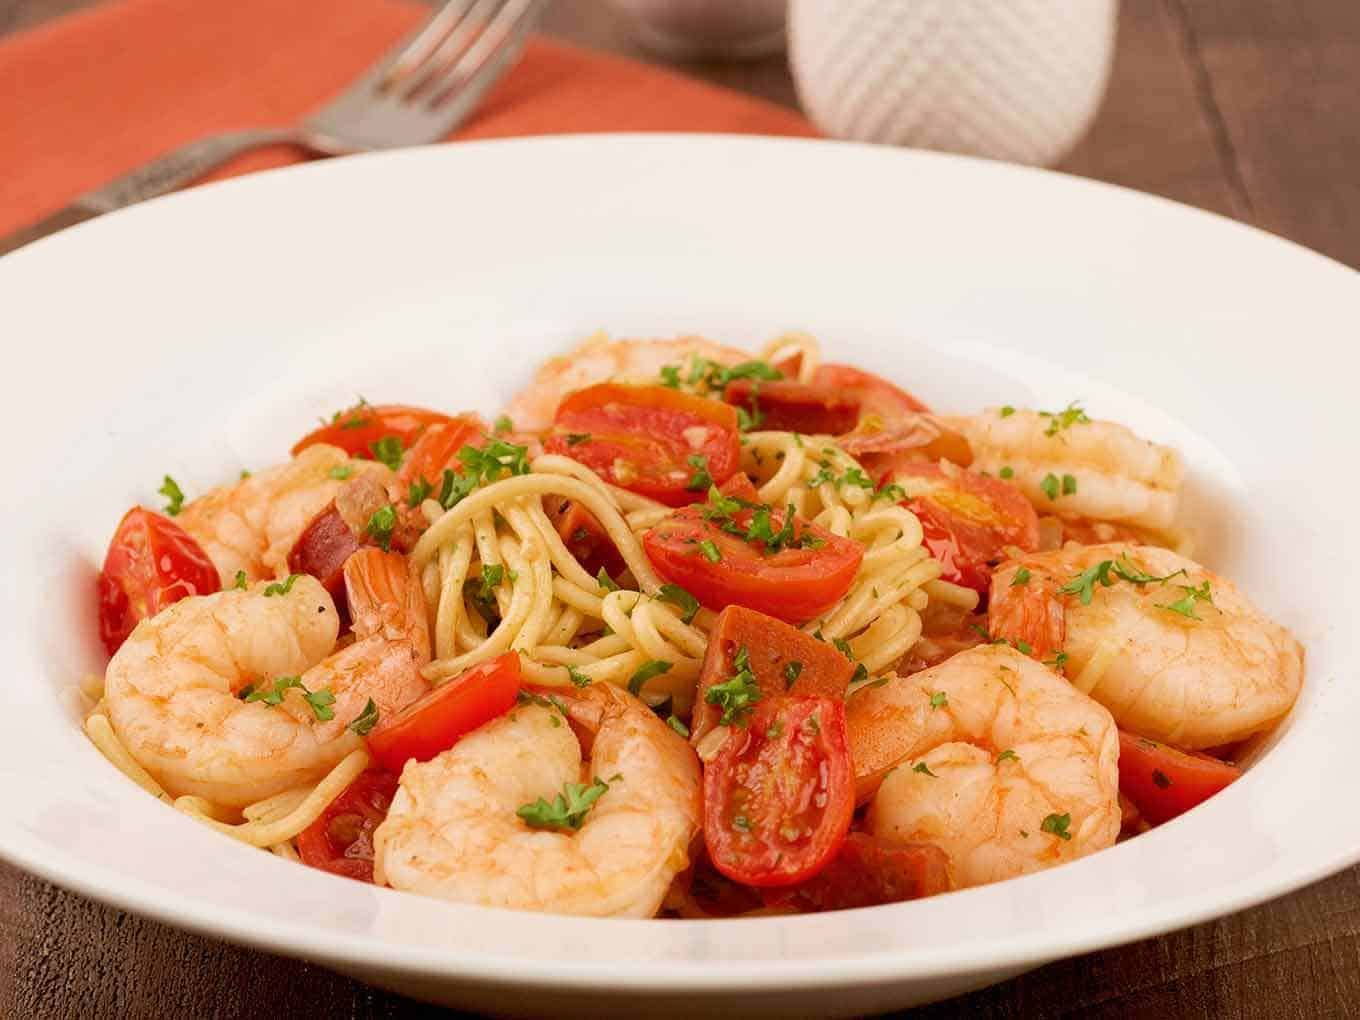 Bowl of spaghetti tossed with sautéed shrimp and diced Spanish chorizo.